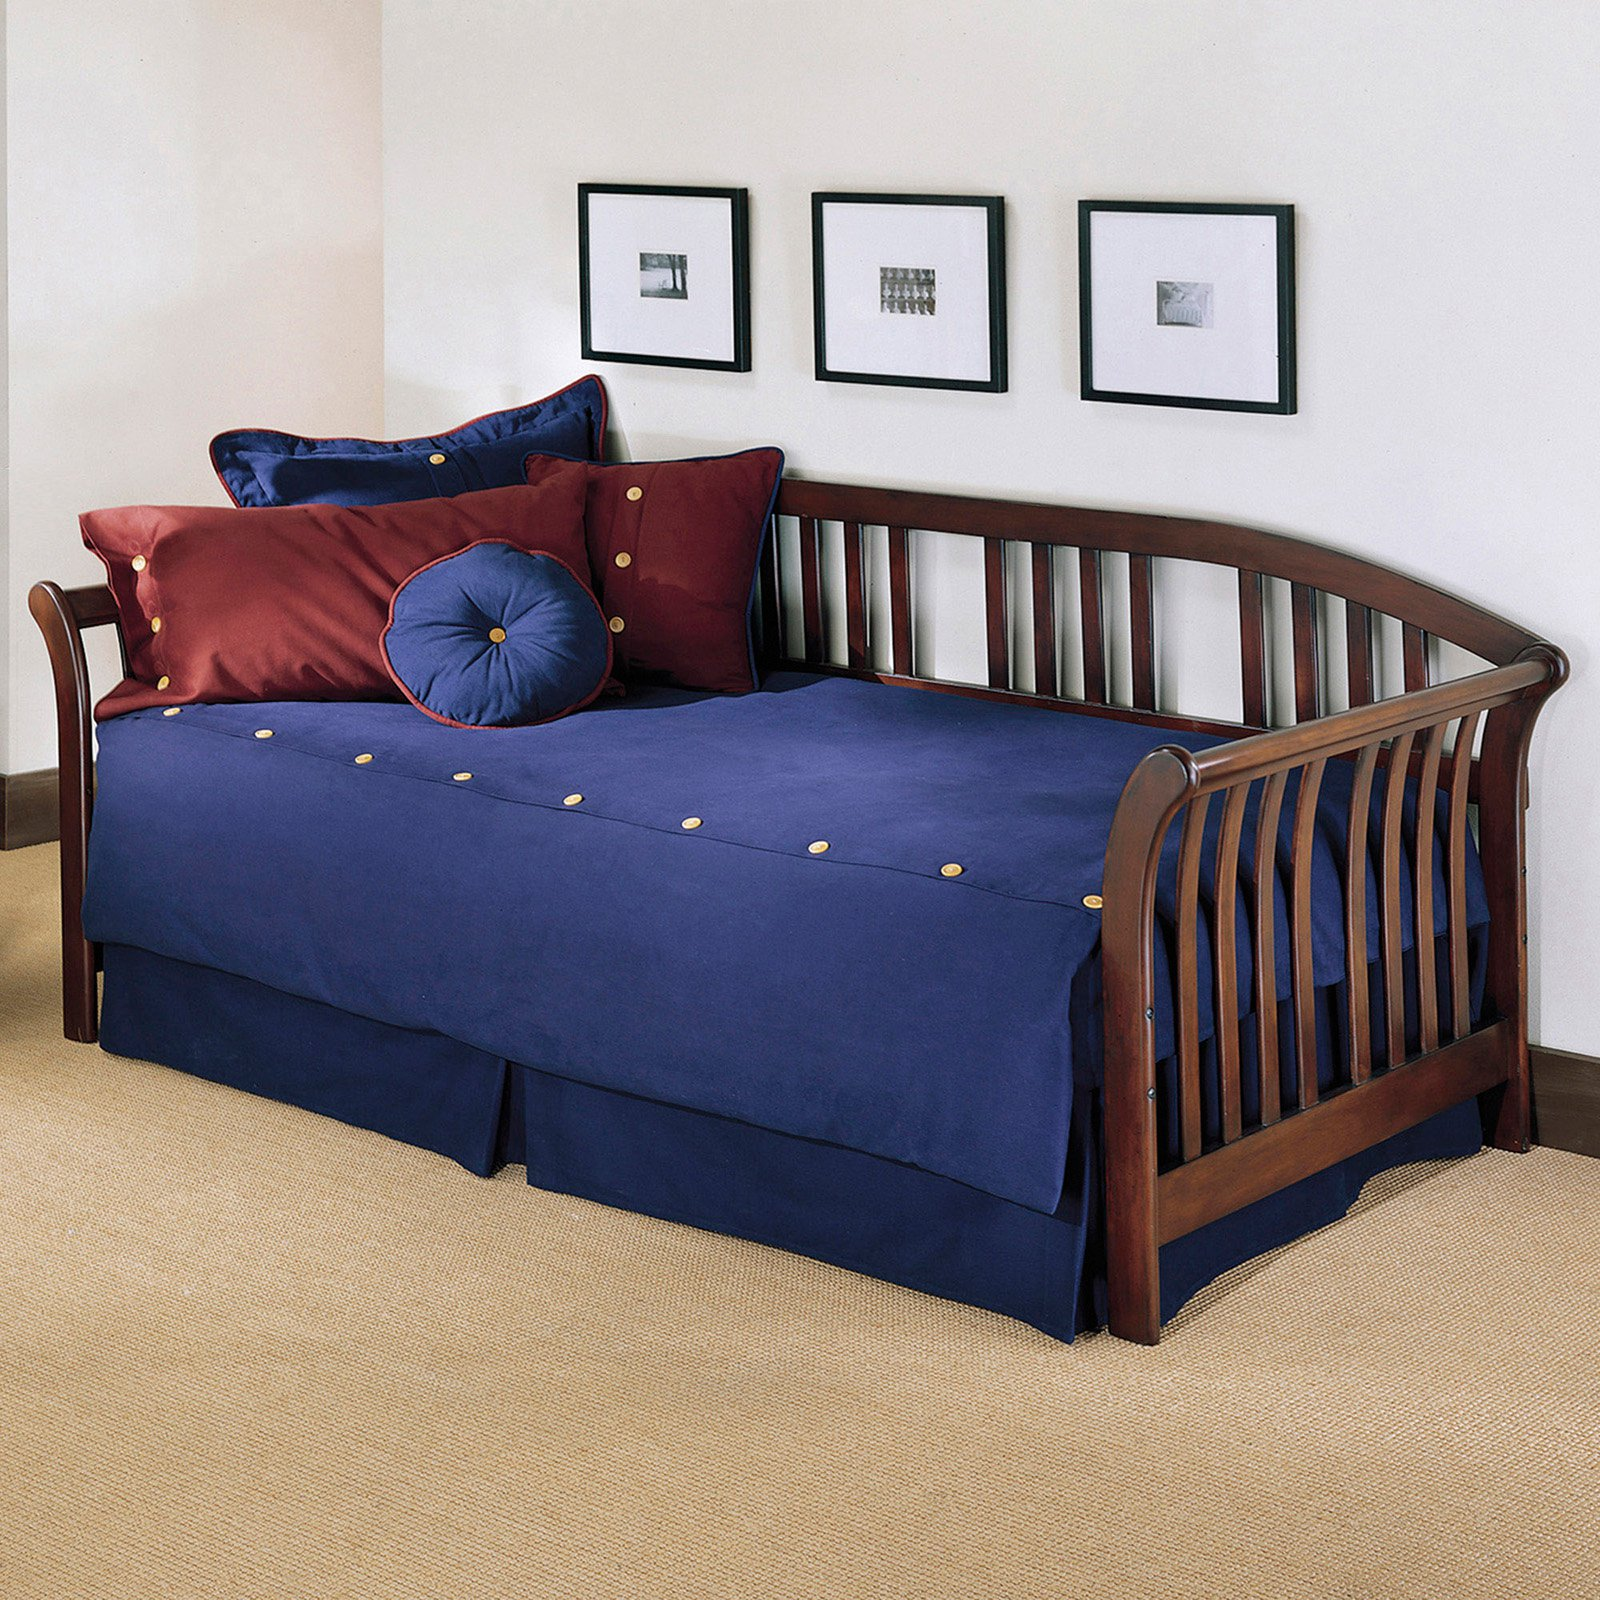 Salem Complete Wood Daybed with Euro Top Spring Support Frame and Sleigh-Style Arms, Mahogany Finish, Twin